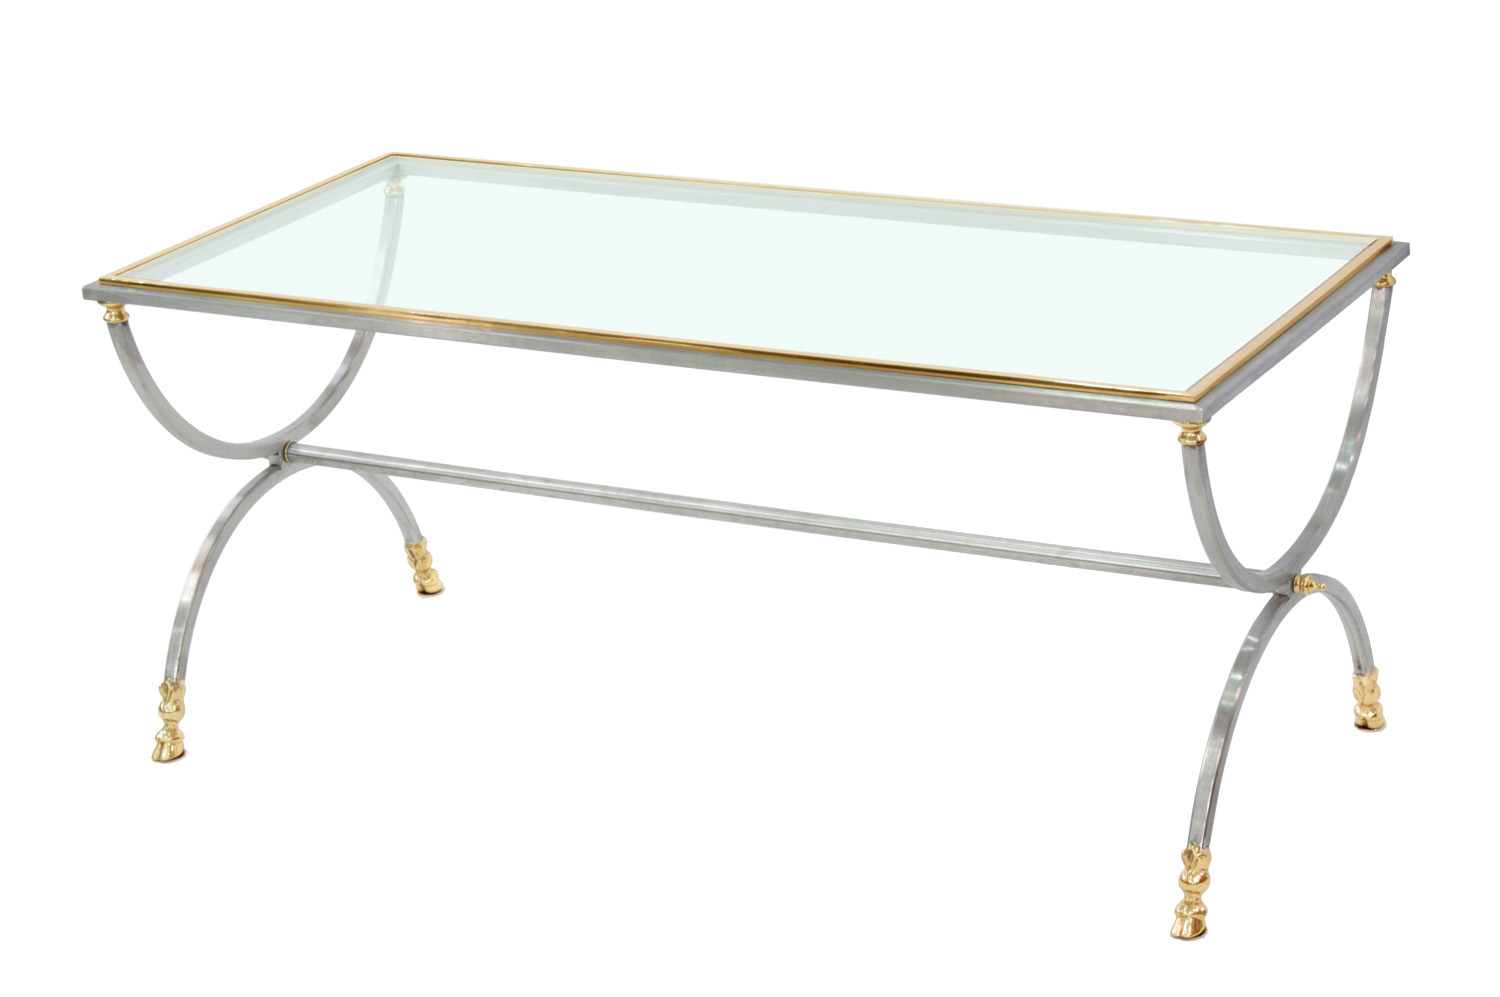 60s 65 steelbrass hoof motif table354 hires.jpg